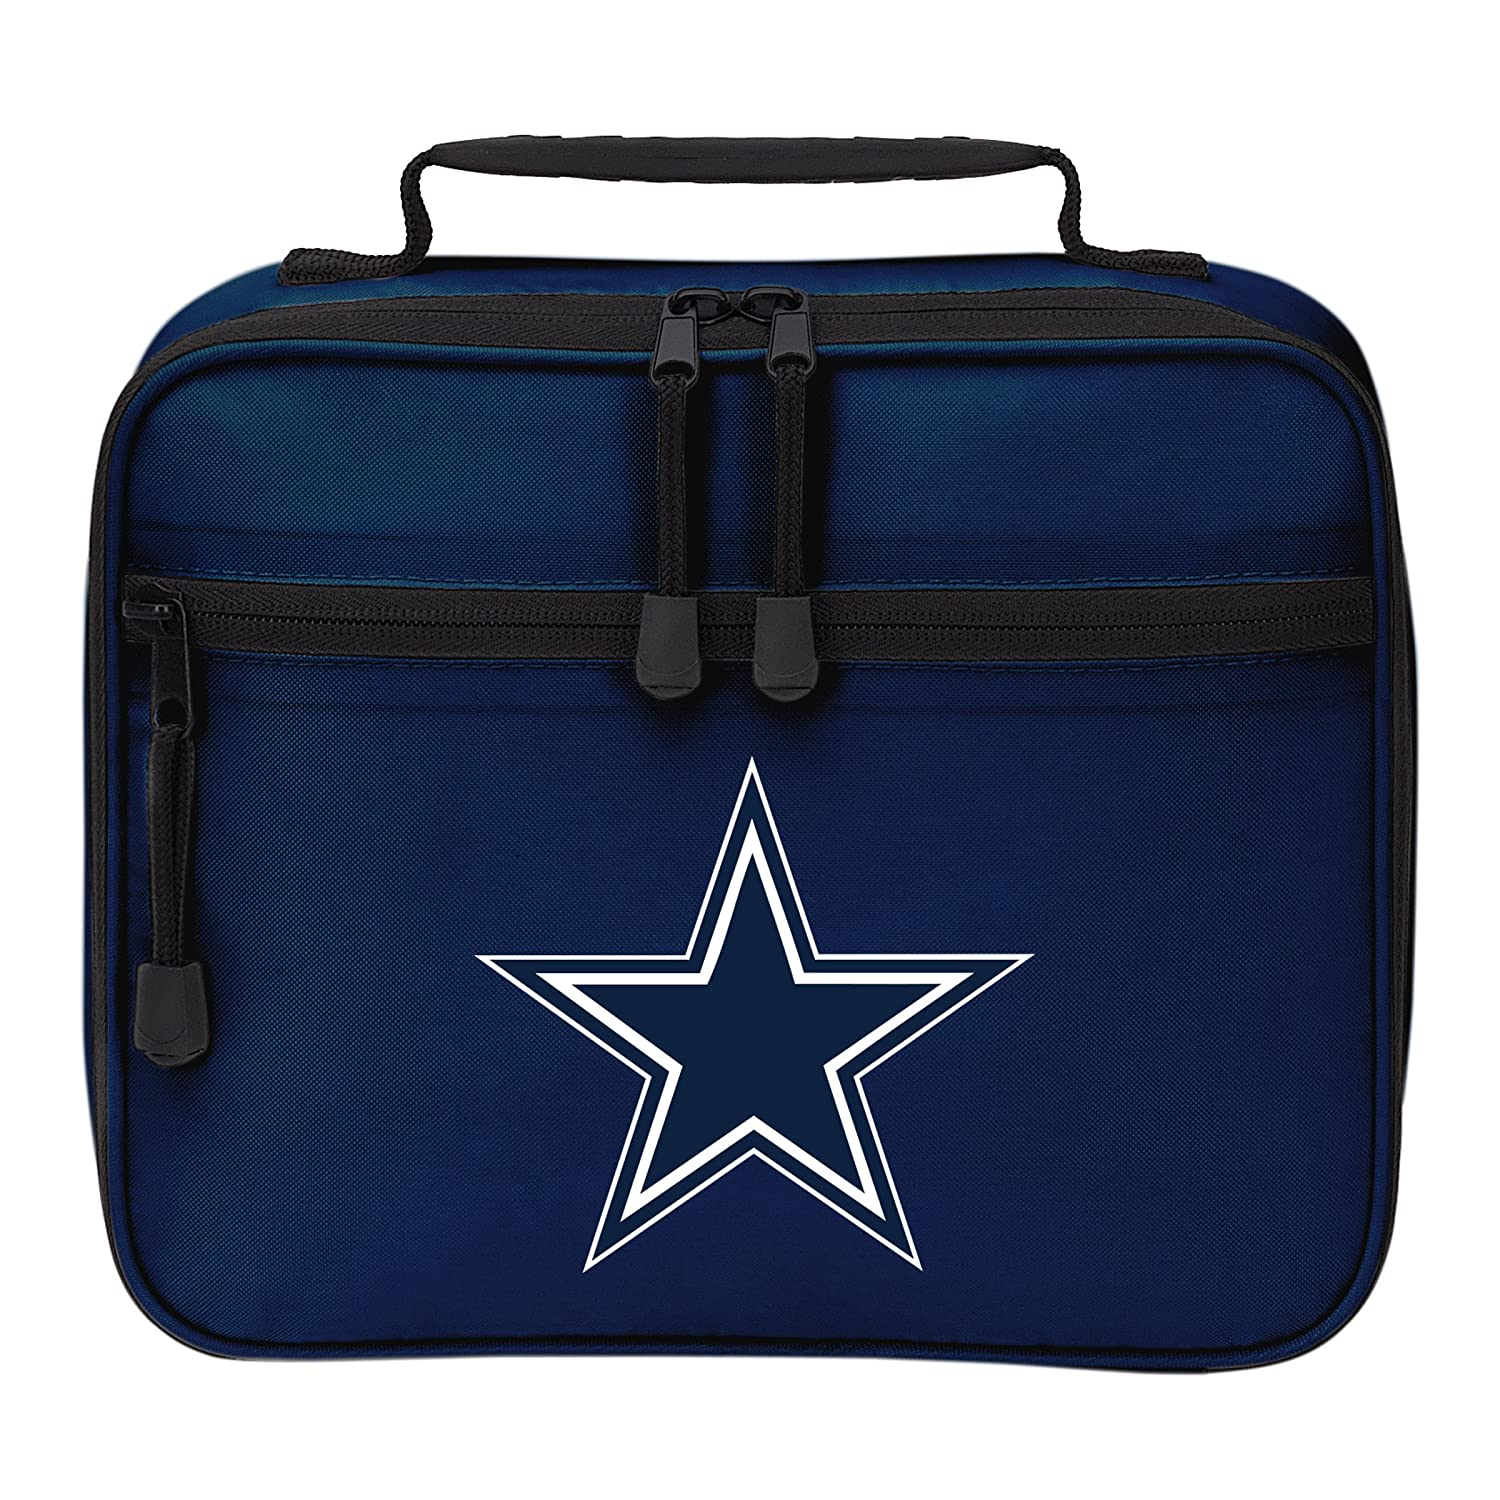 Officially Licensed NFL Cooltime Lunch Kit Bag 10 x 3 x 8 Multi Color